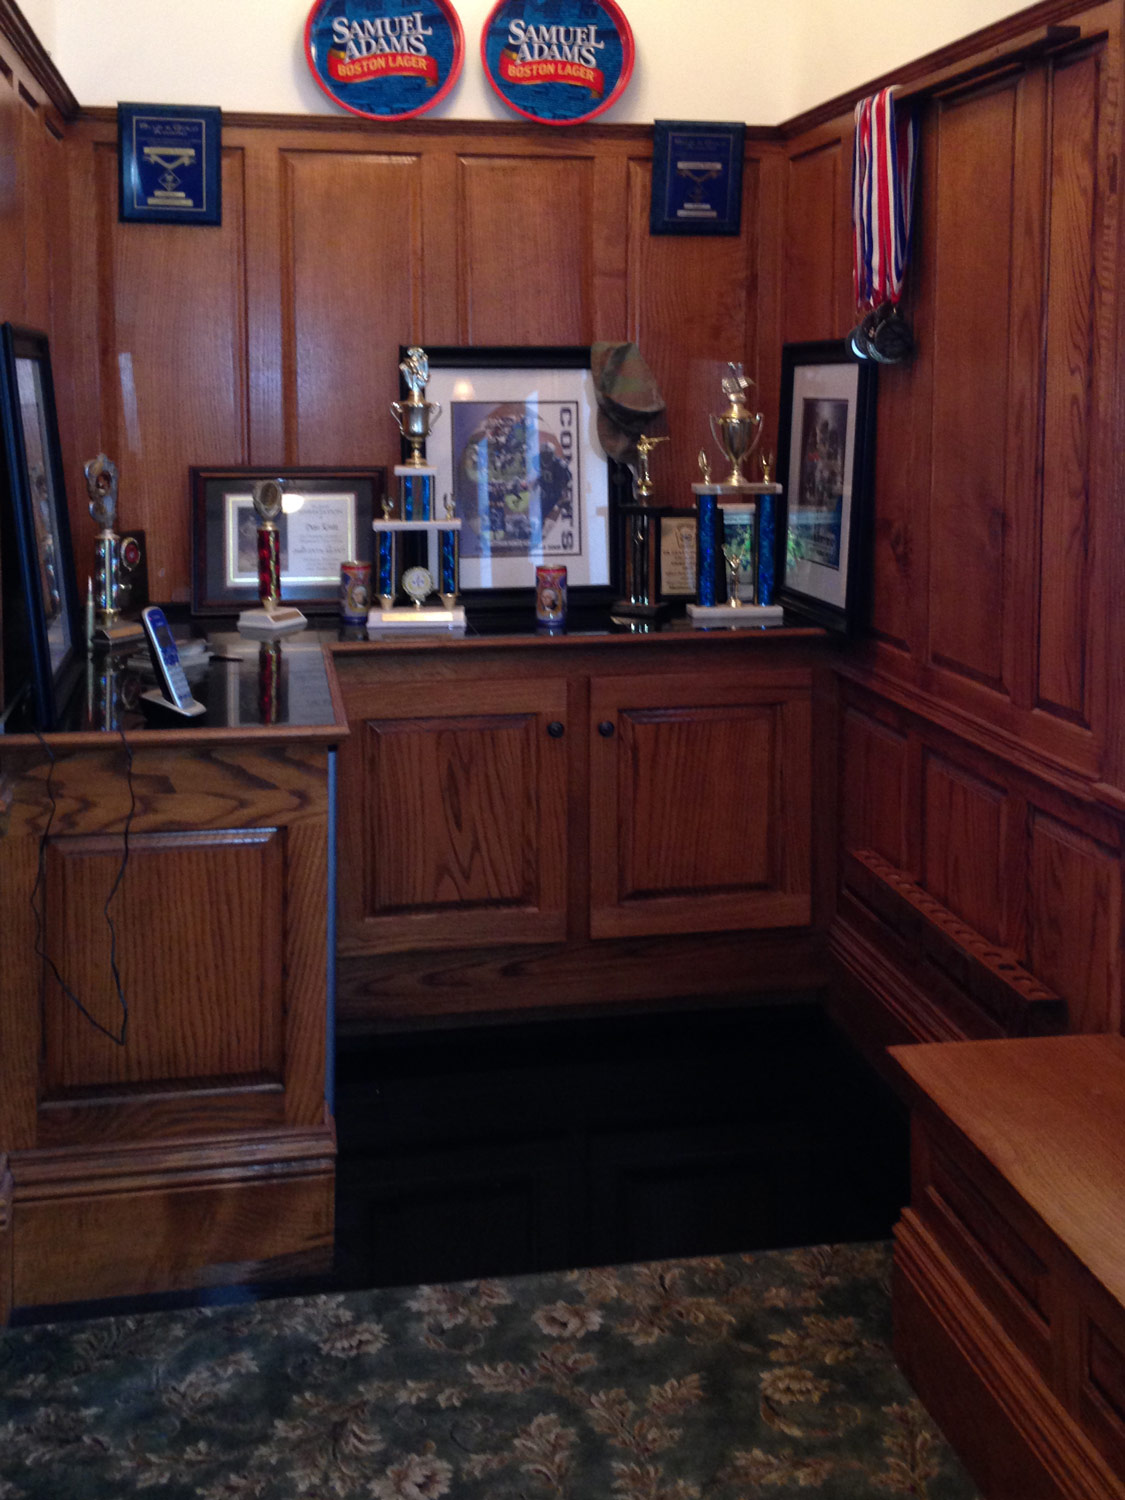 A nice intimate nook for the kids trophies and awards.